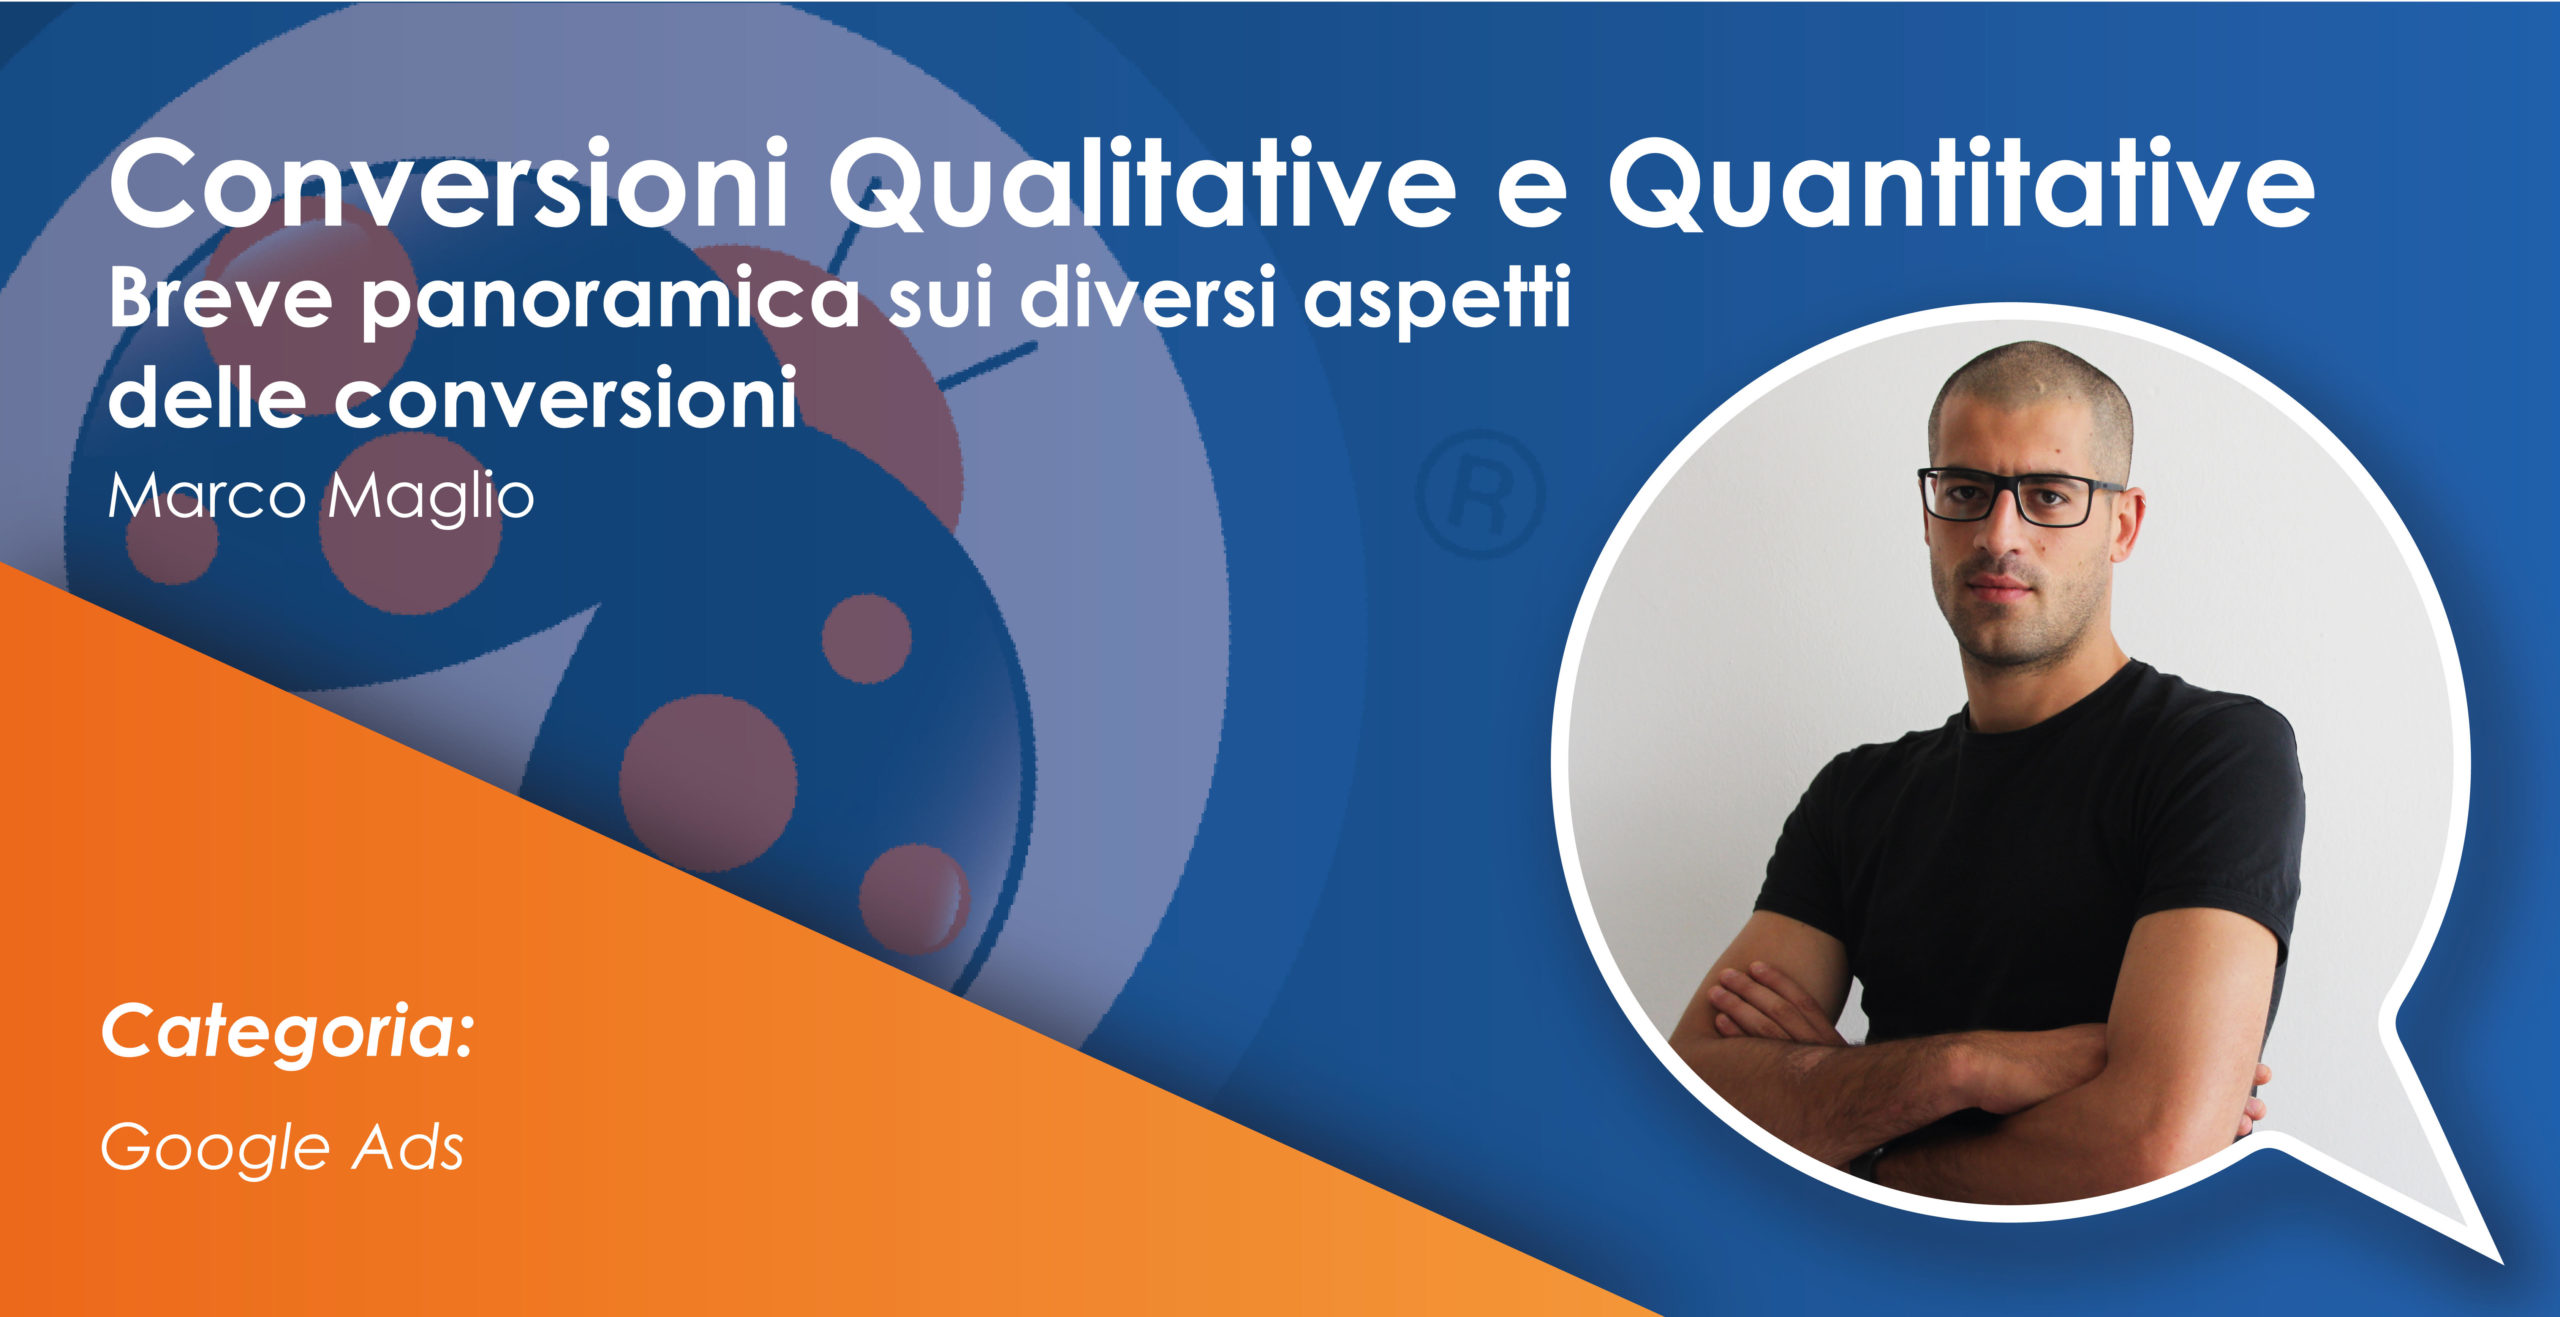 Conversioni Qualitative e Quantitative